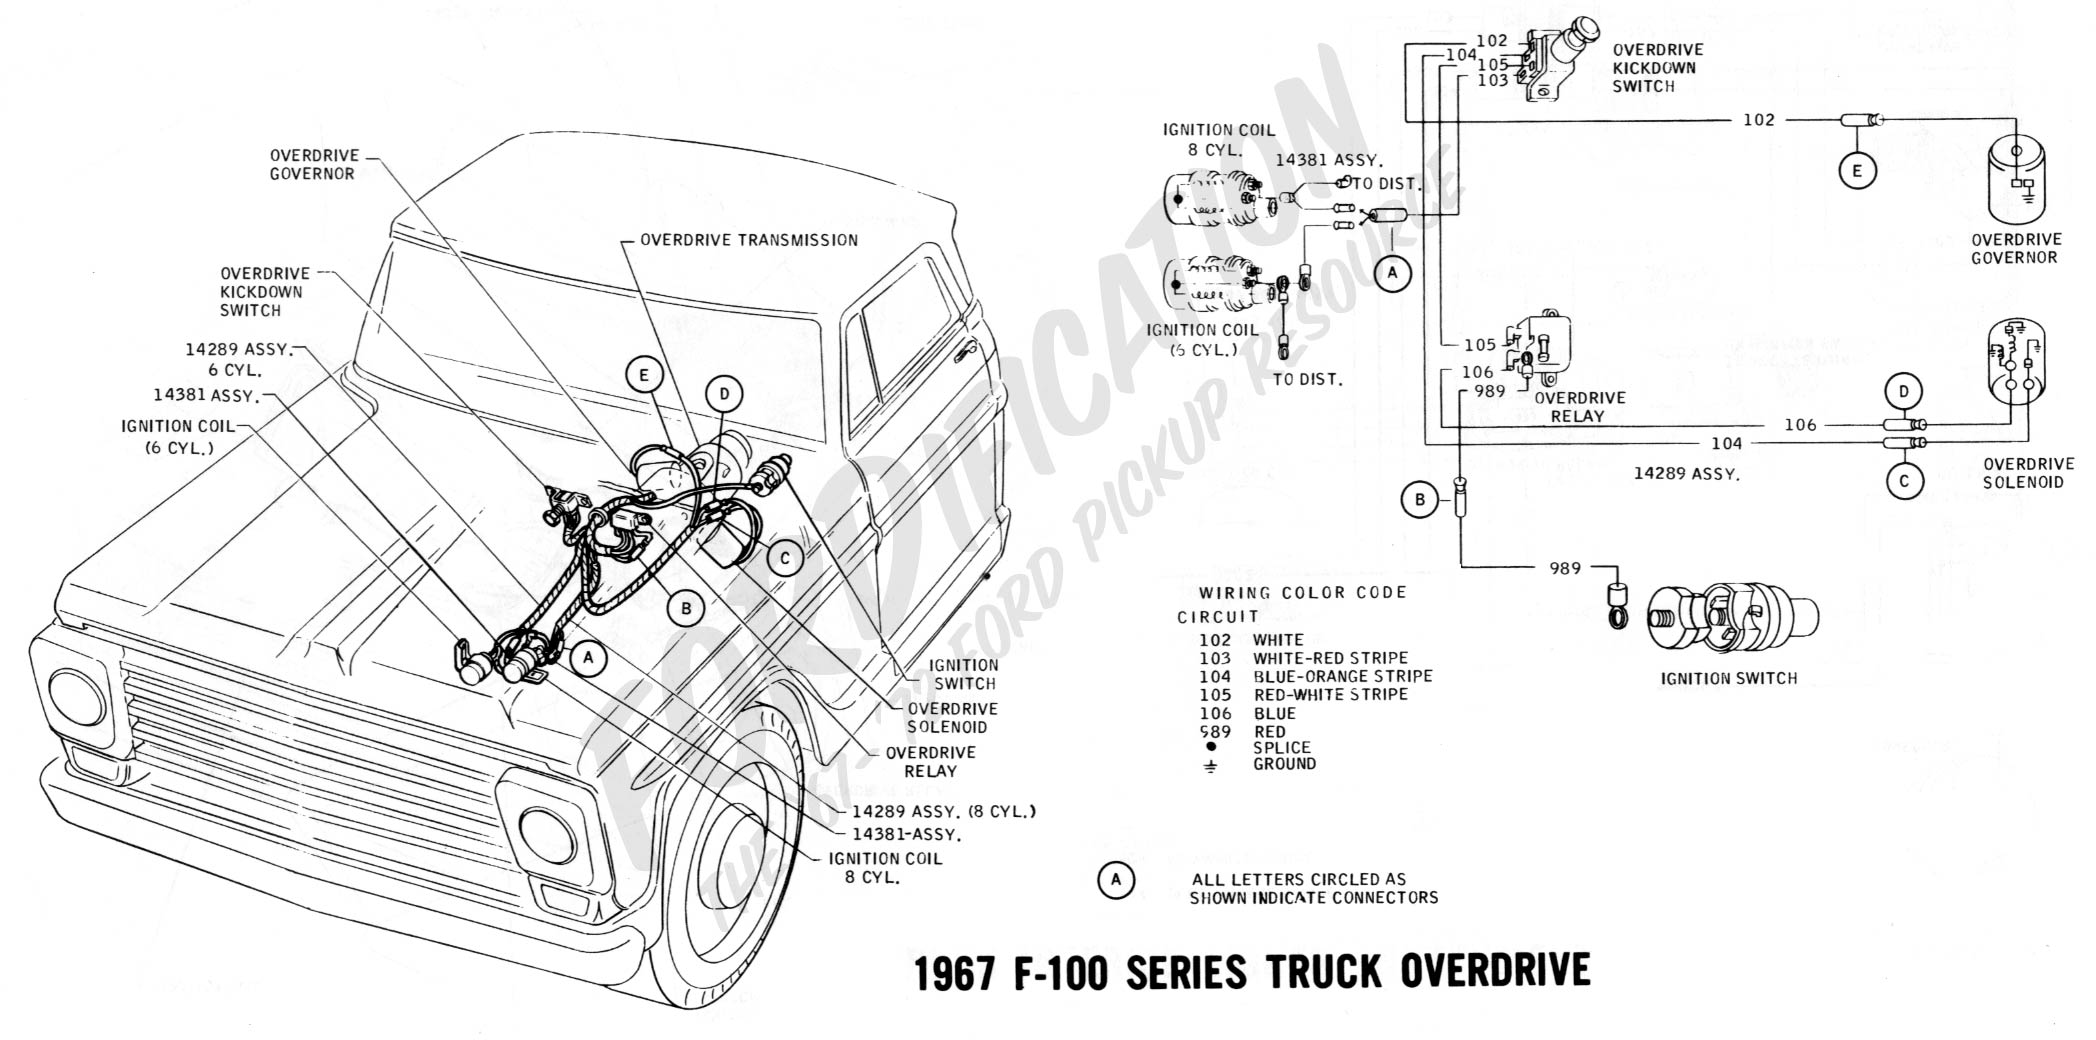 wiring 1967overdrive2 ford truck technical drawings and schematics section h wiring 1985 ford truck wiring diagram at bayanpartner.co